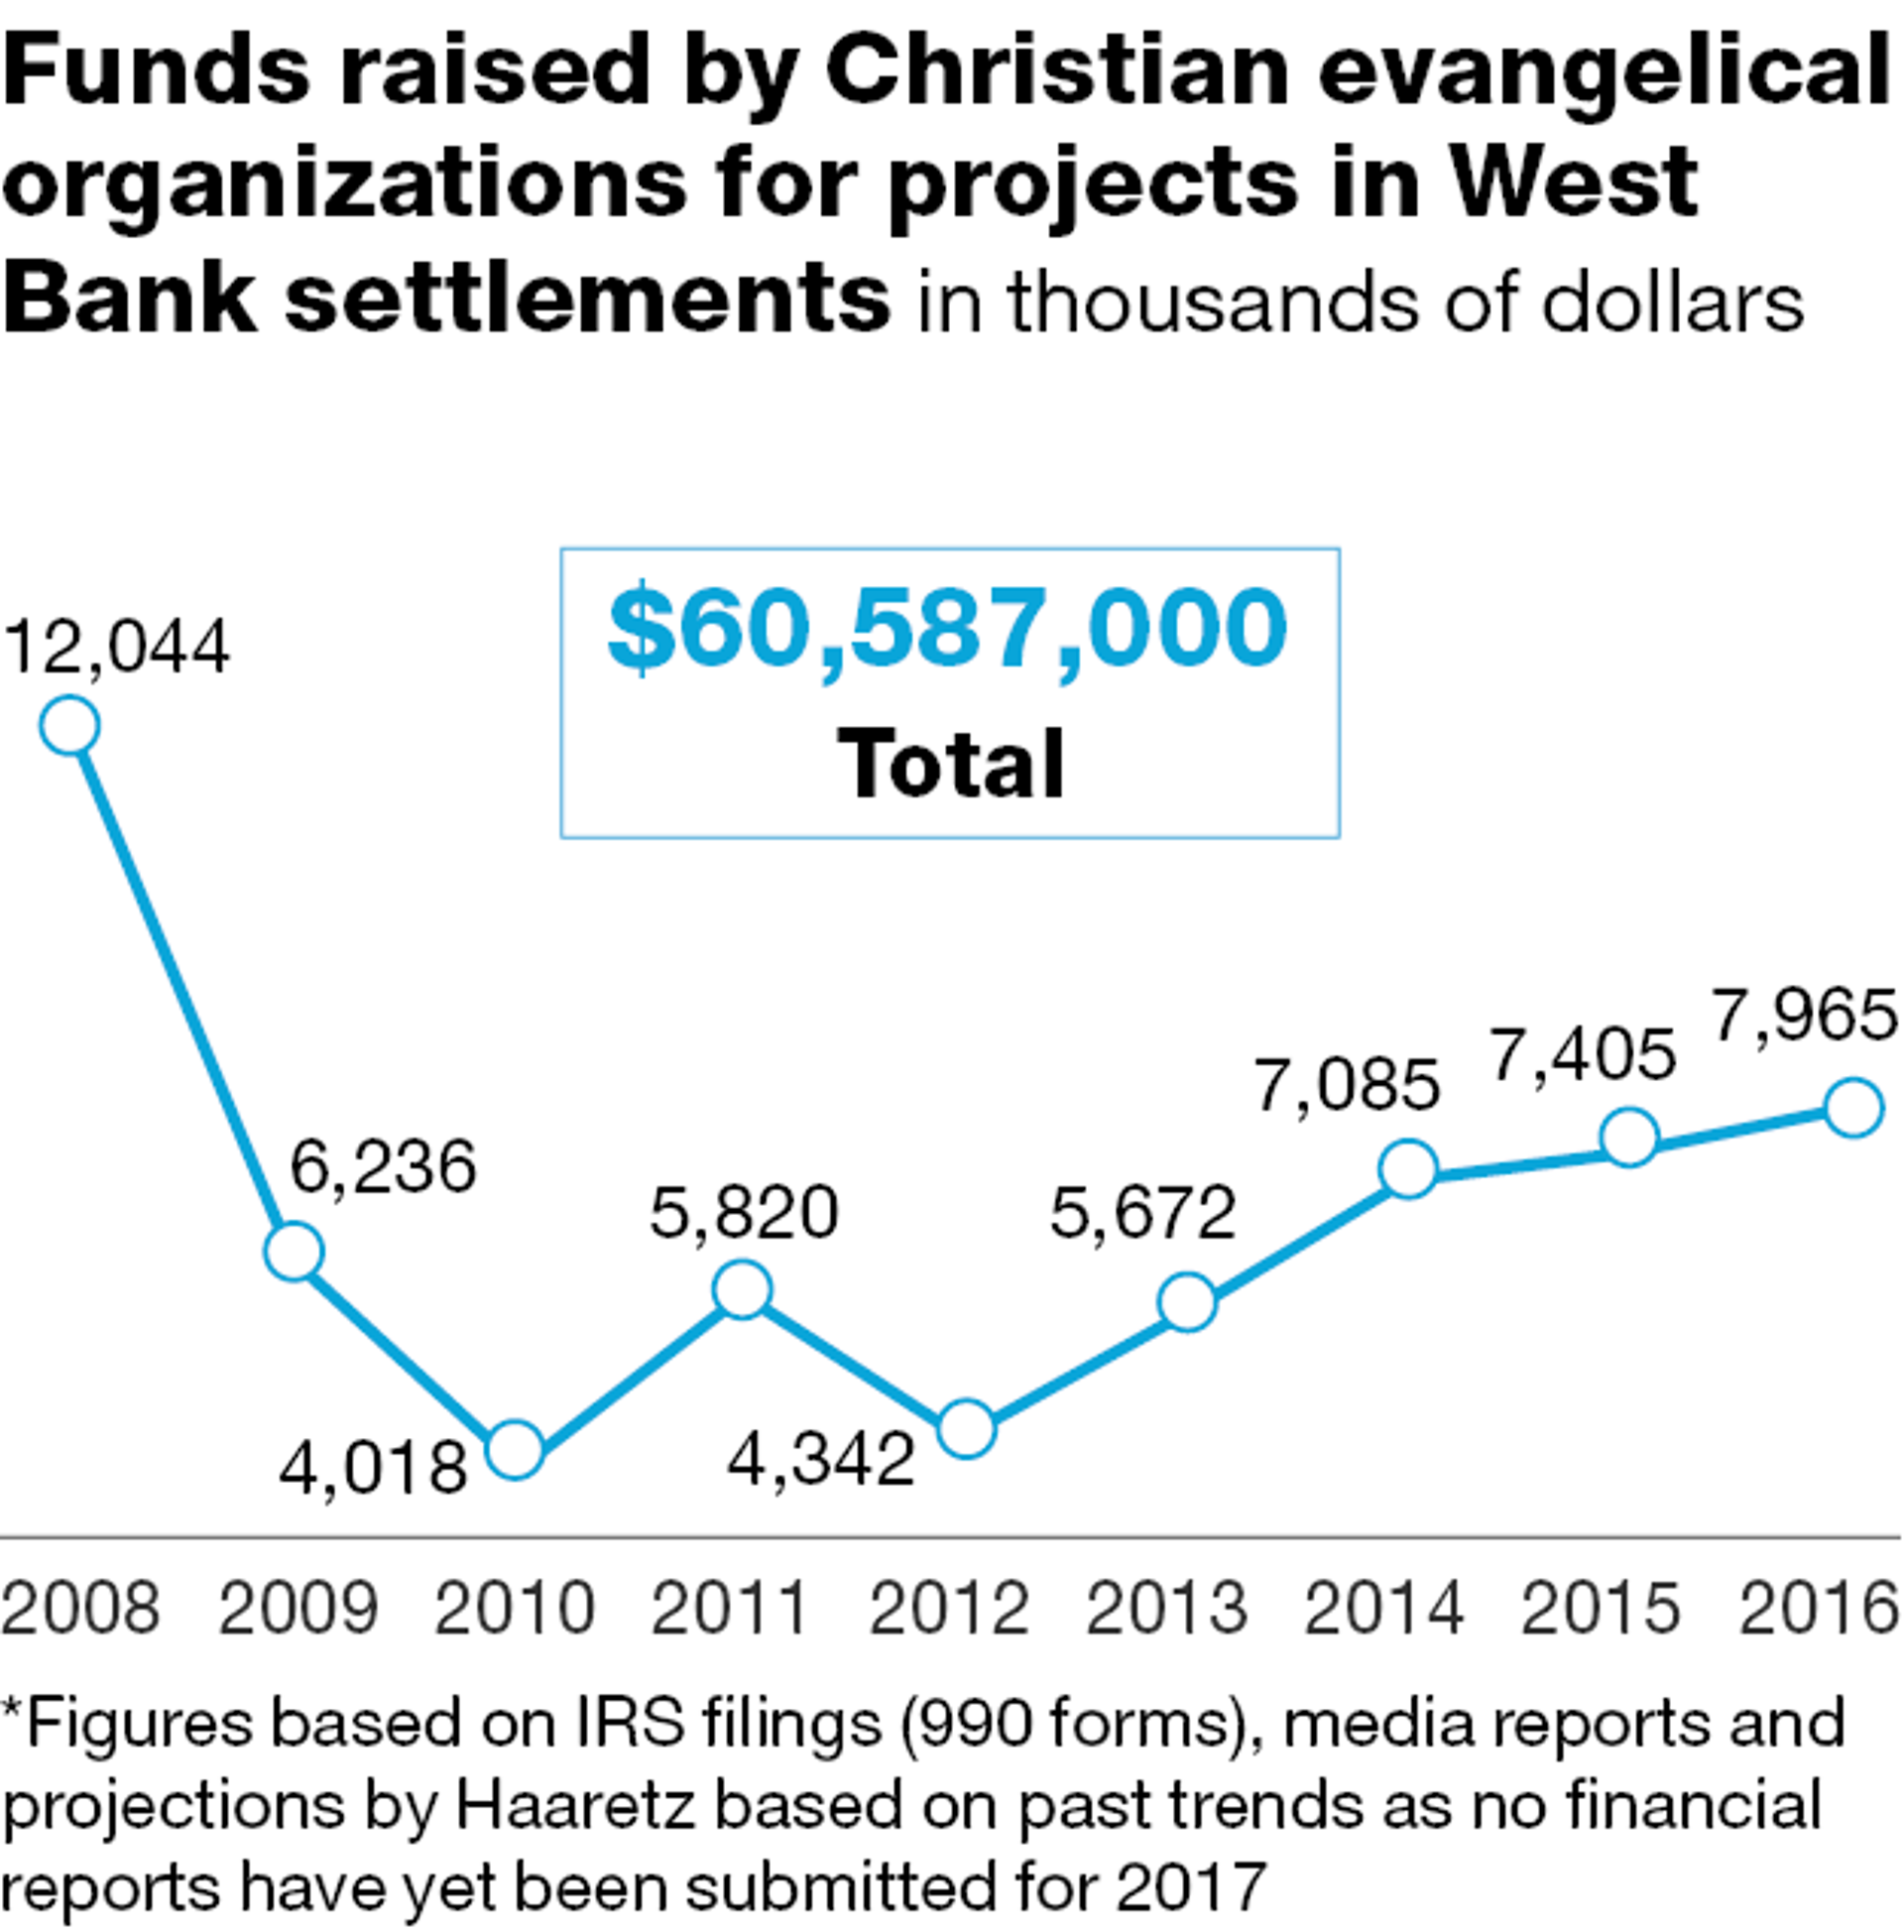 Funds raised by Christian evangelical organizations for projects in West Bank settlements